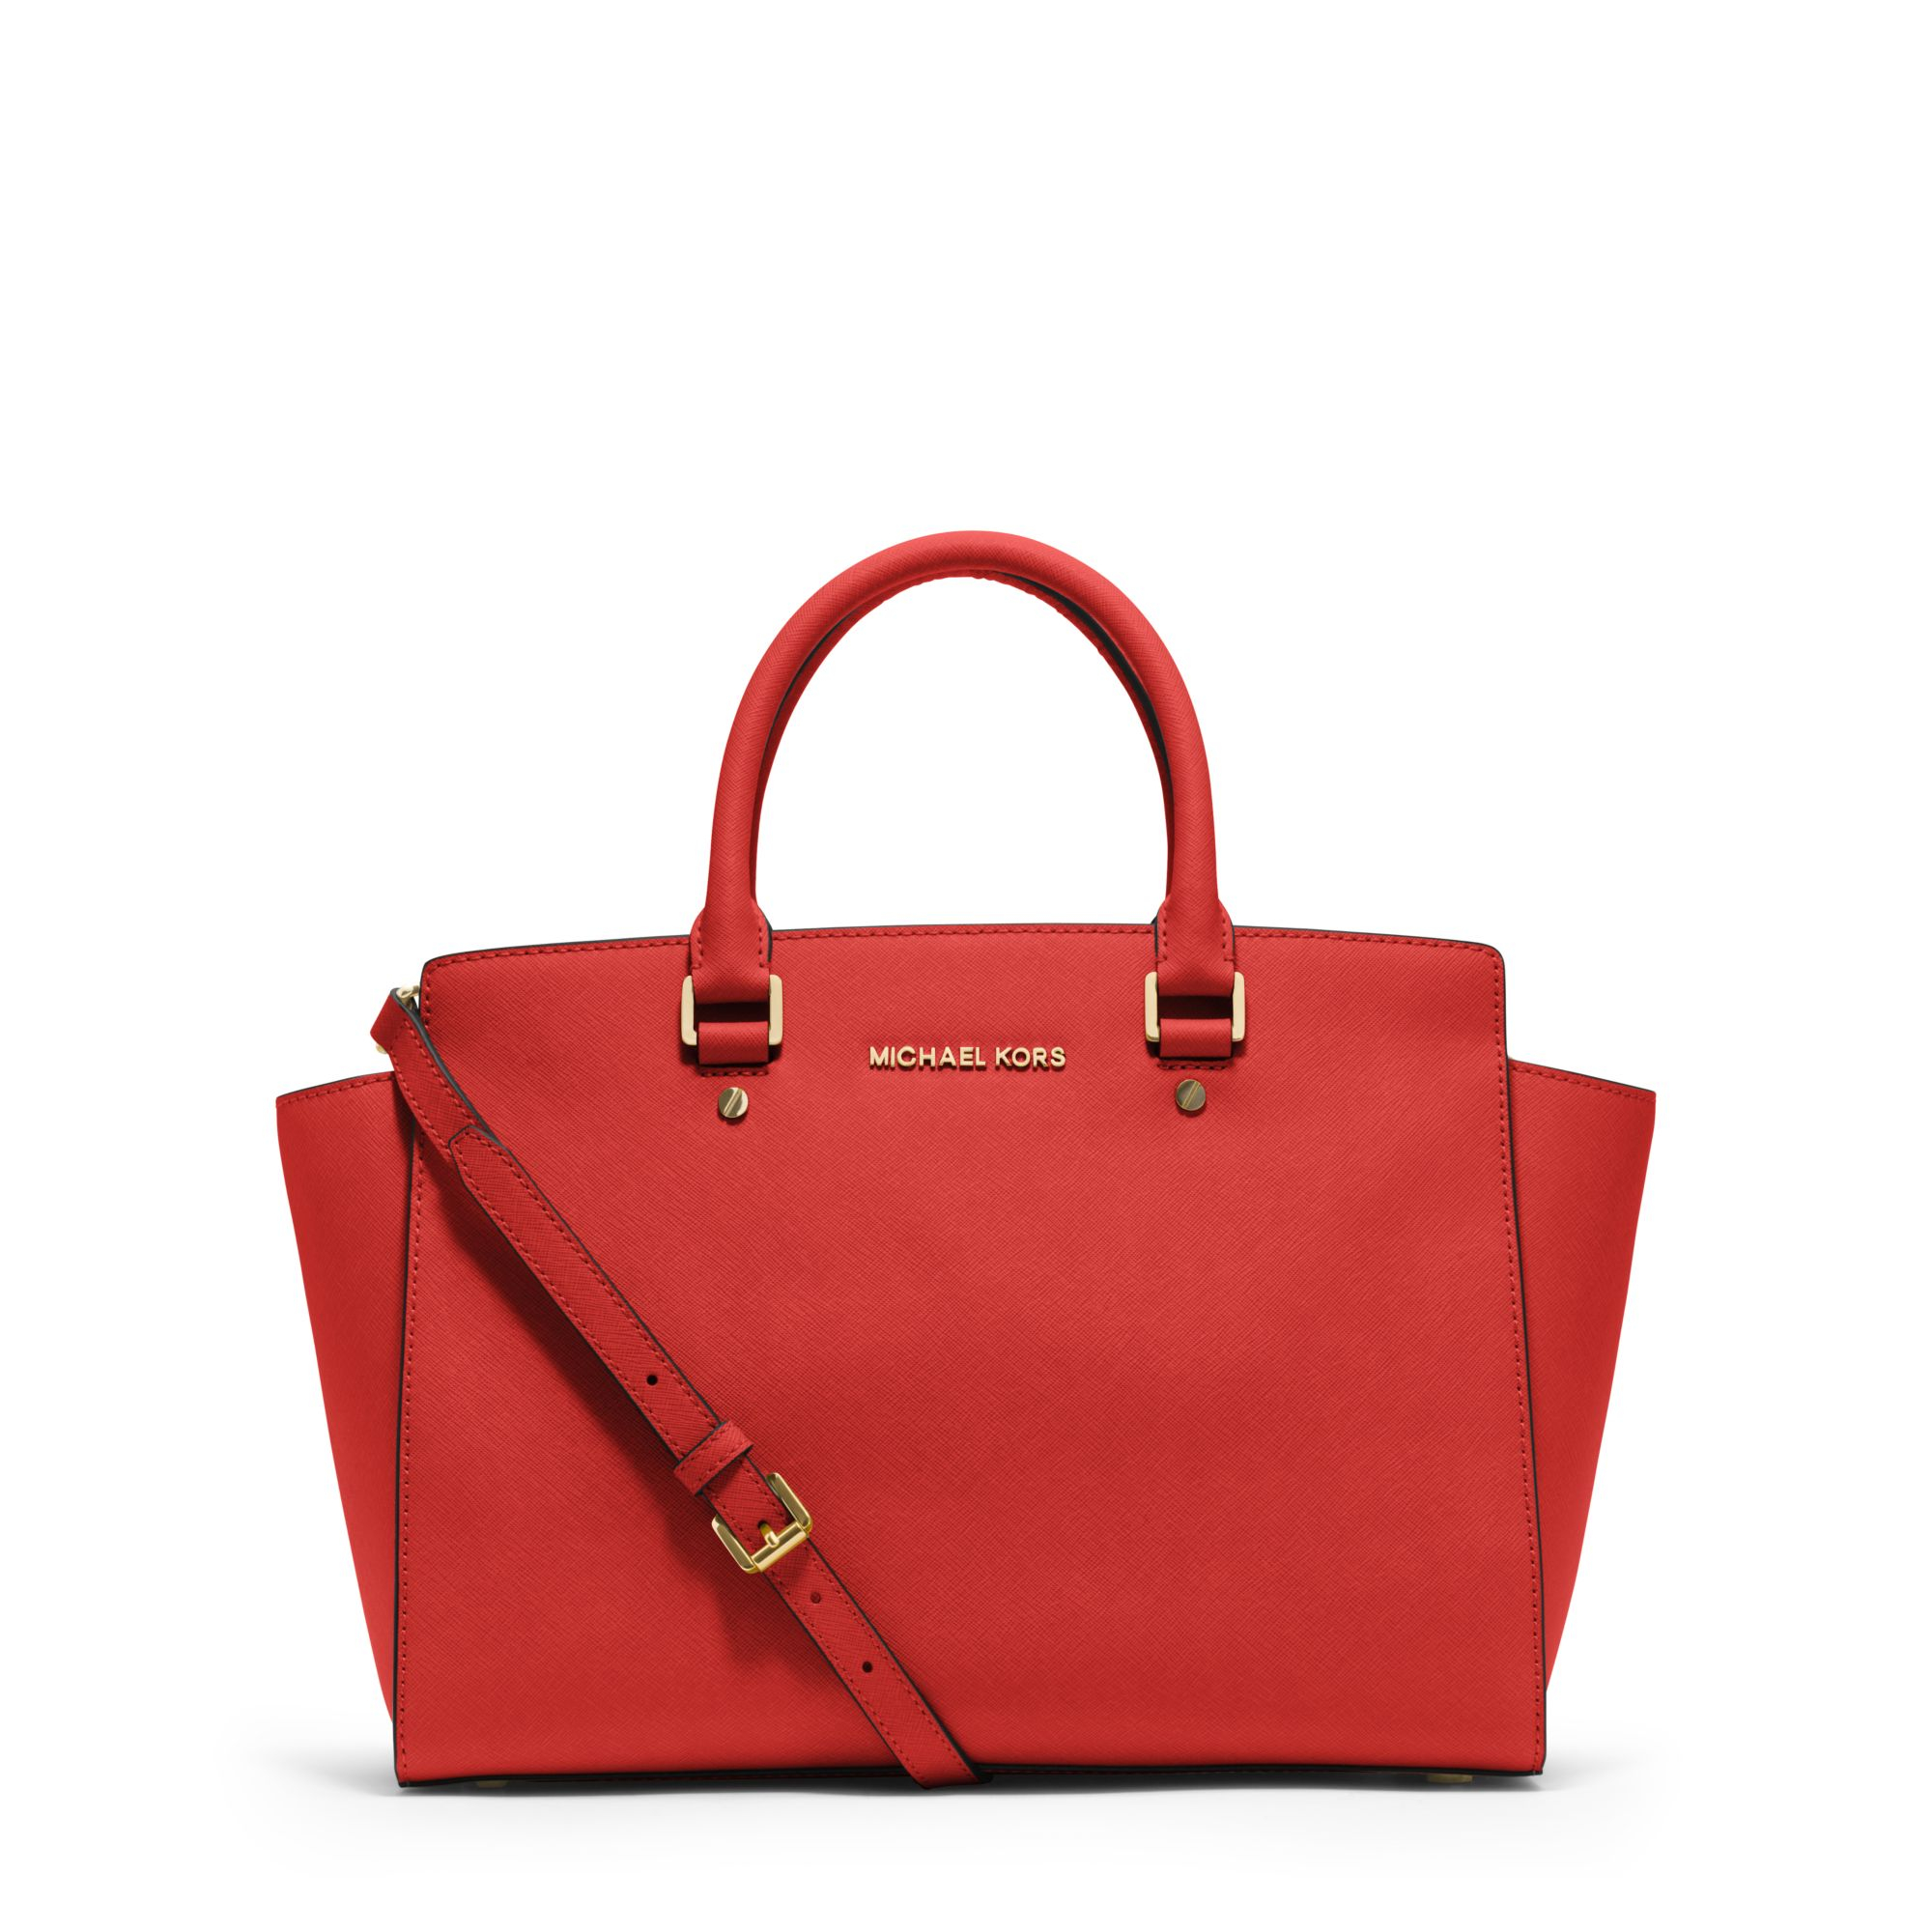 michael kors selma large saffiano leather satchel in red. Black Bedroom Furniture Sets. Home Design Ideas